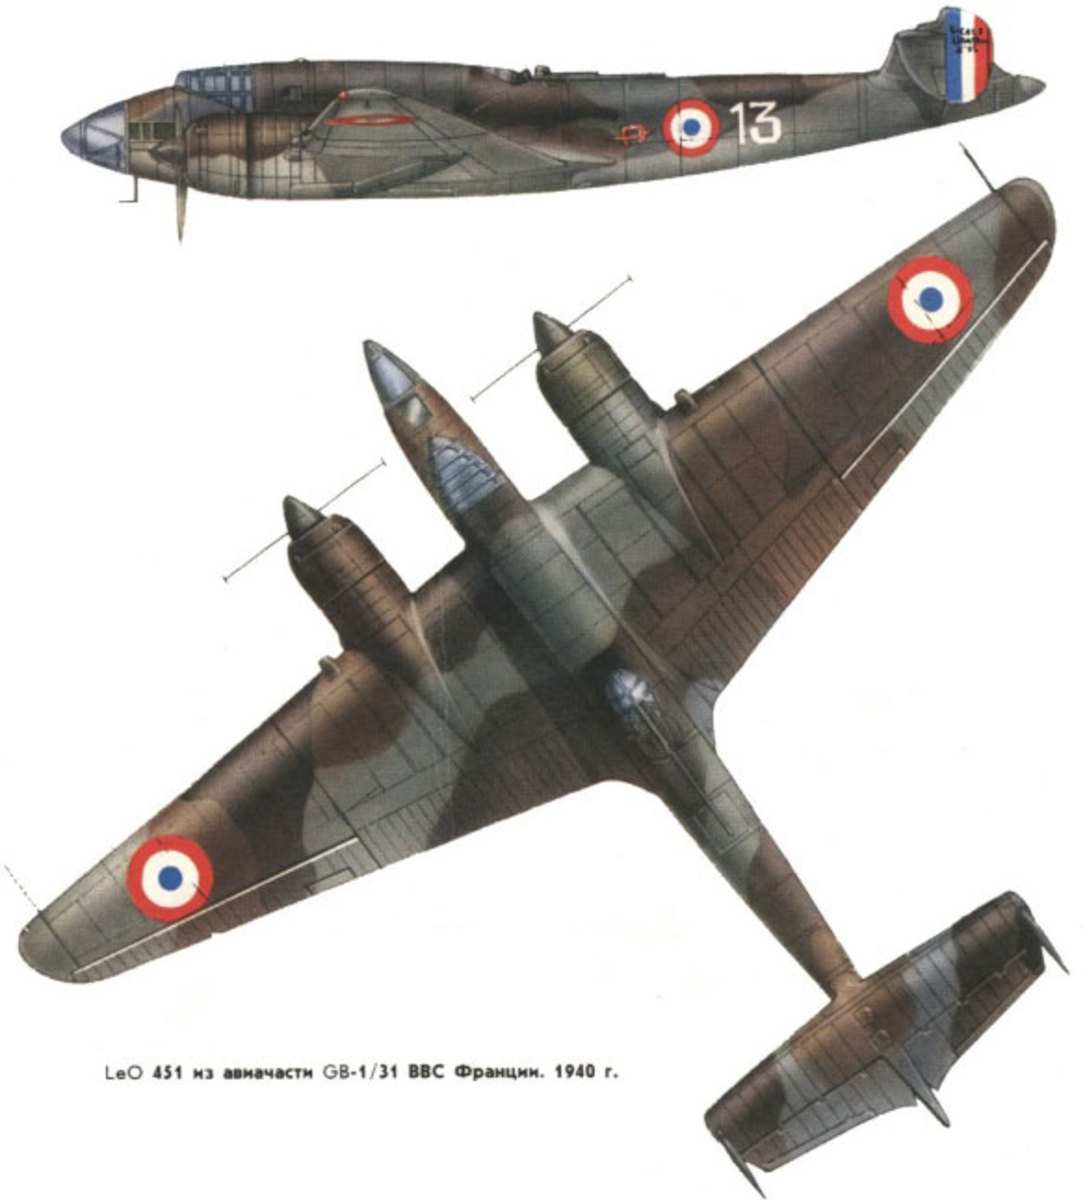 The LeO 451, which was a very fast and well armed medium bomber, although with some problems with turbulence.